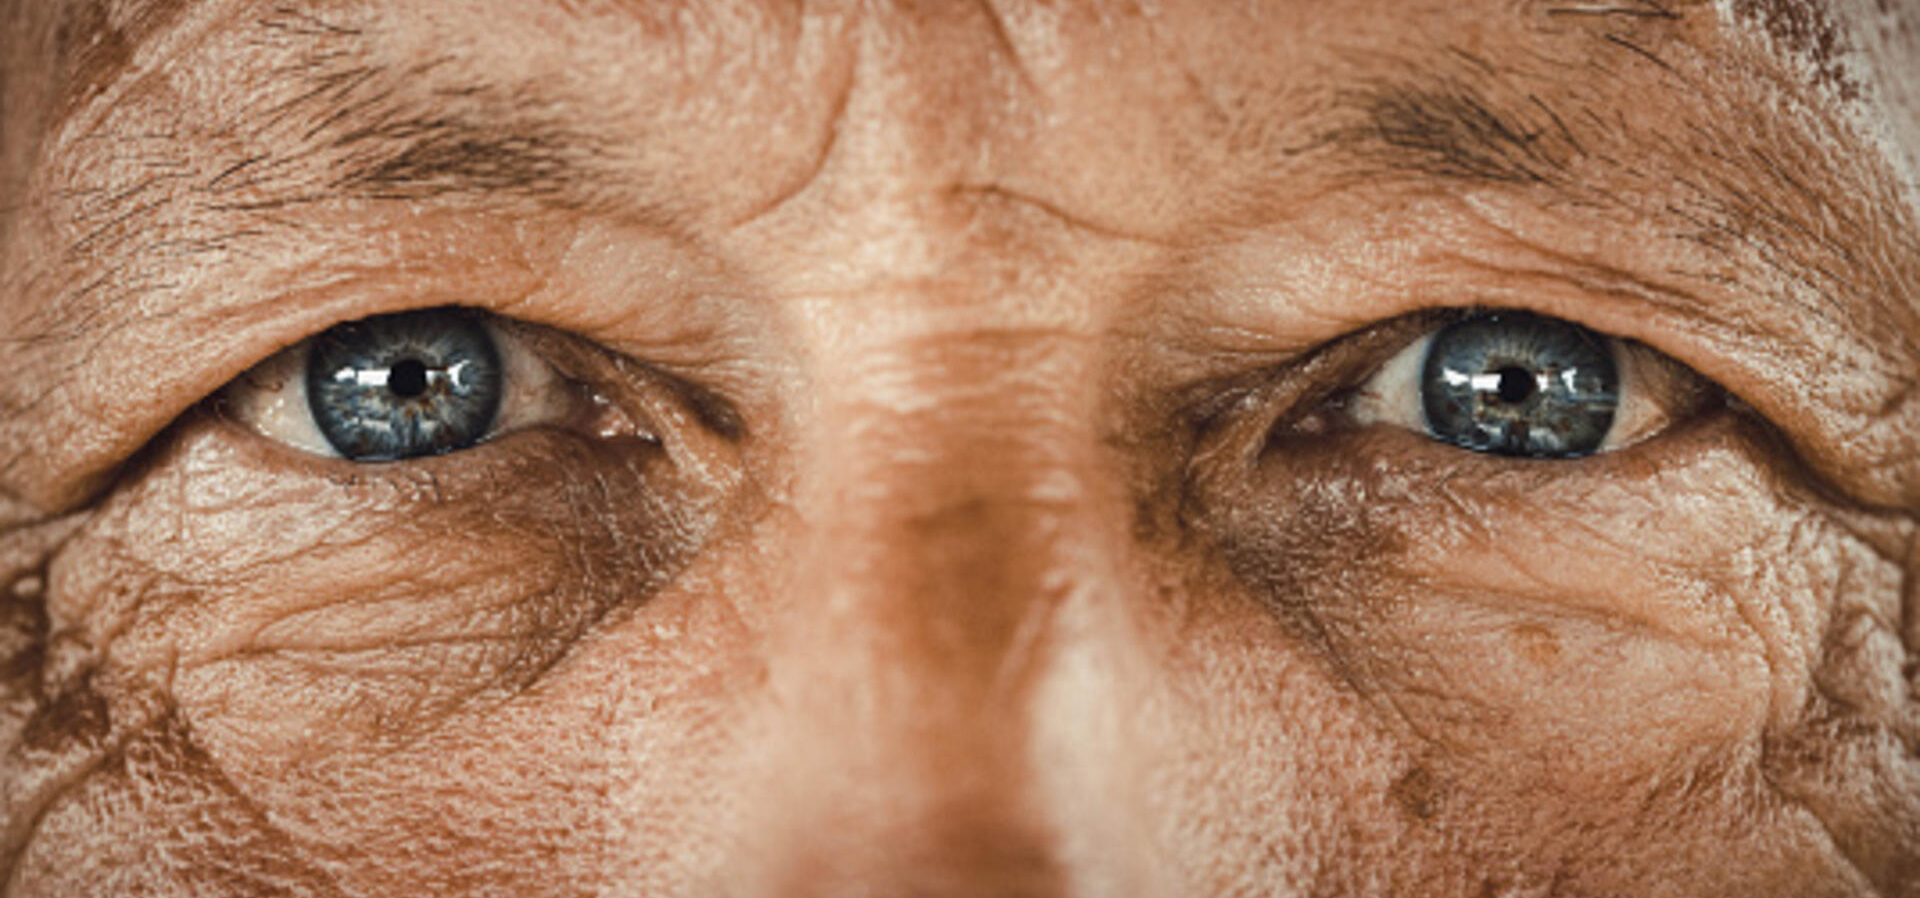 stock image of elderly man's eyes.